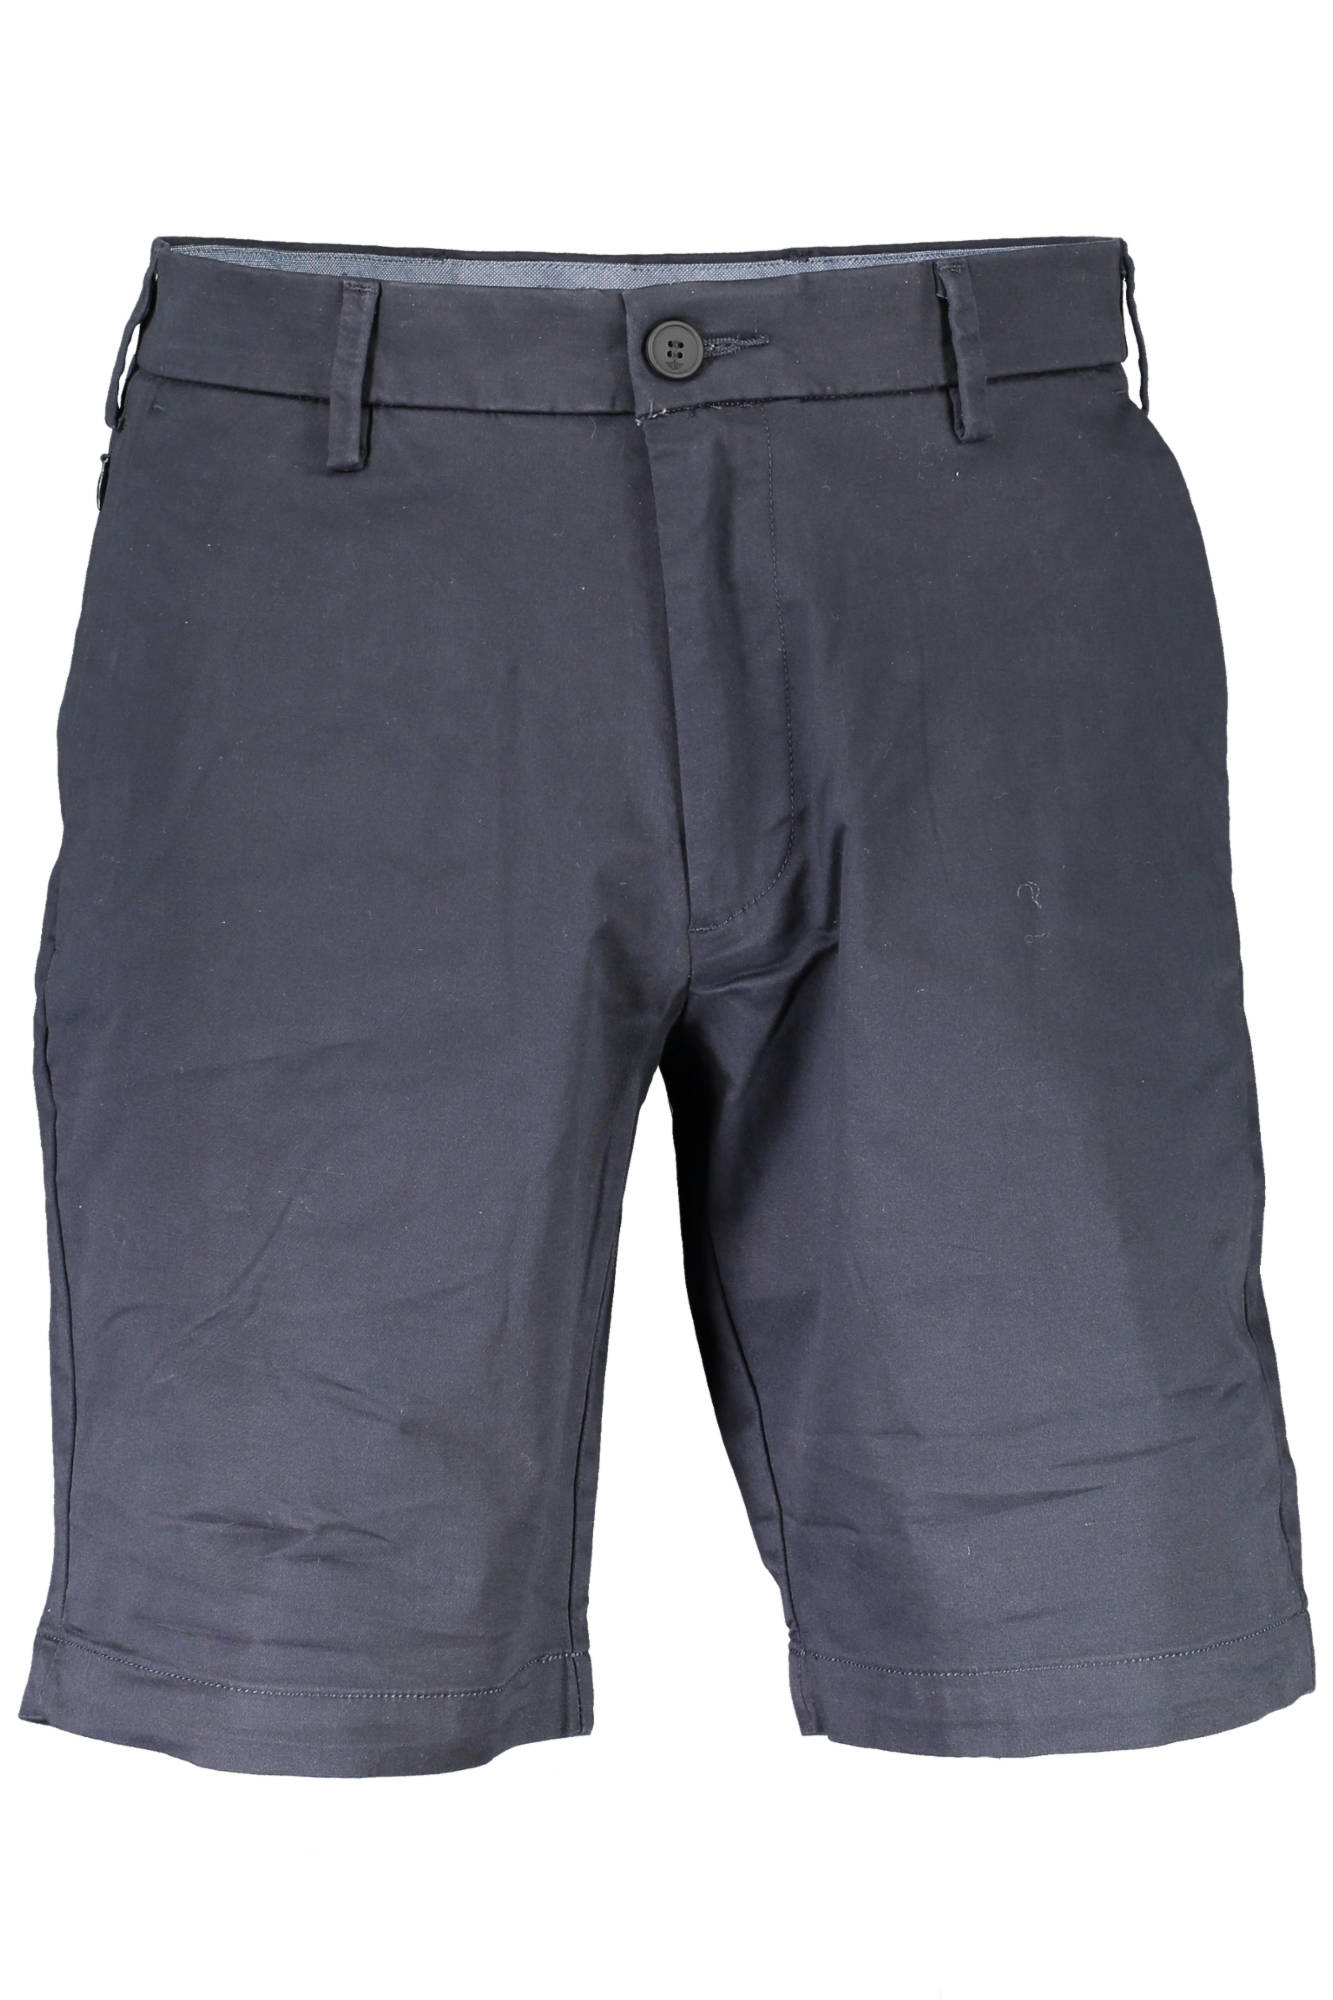 NWT Men/'s Dockers Shorts Chino Flexible 4 Way Stretch FF Green Size 33 MSRP $54